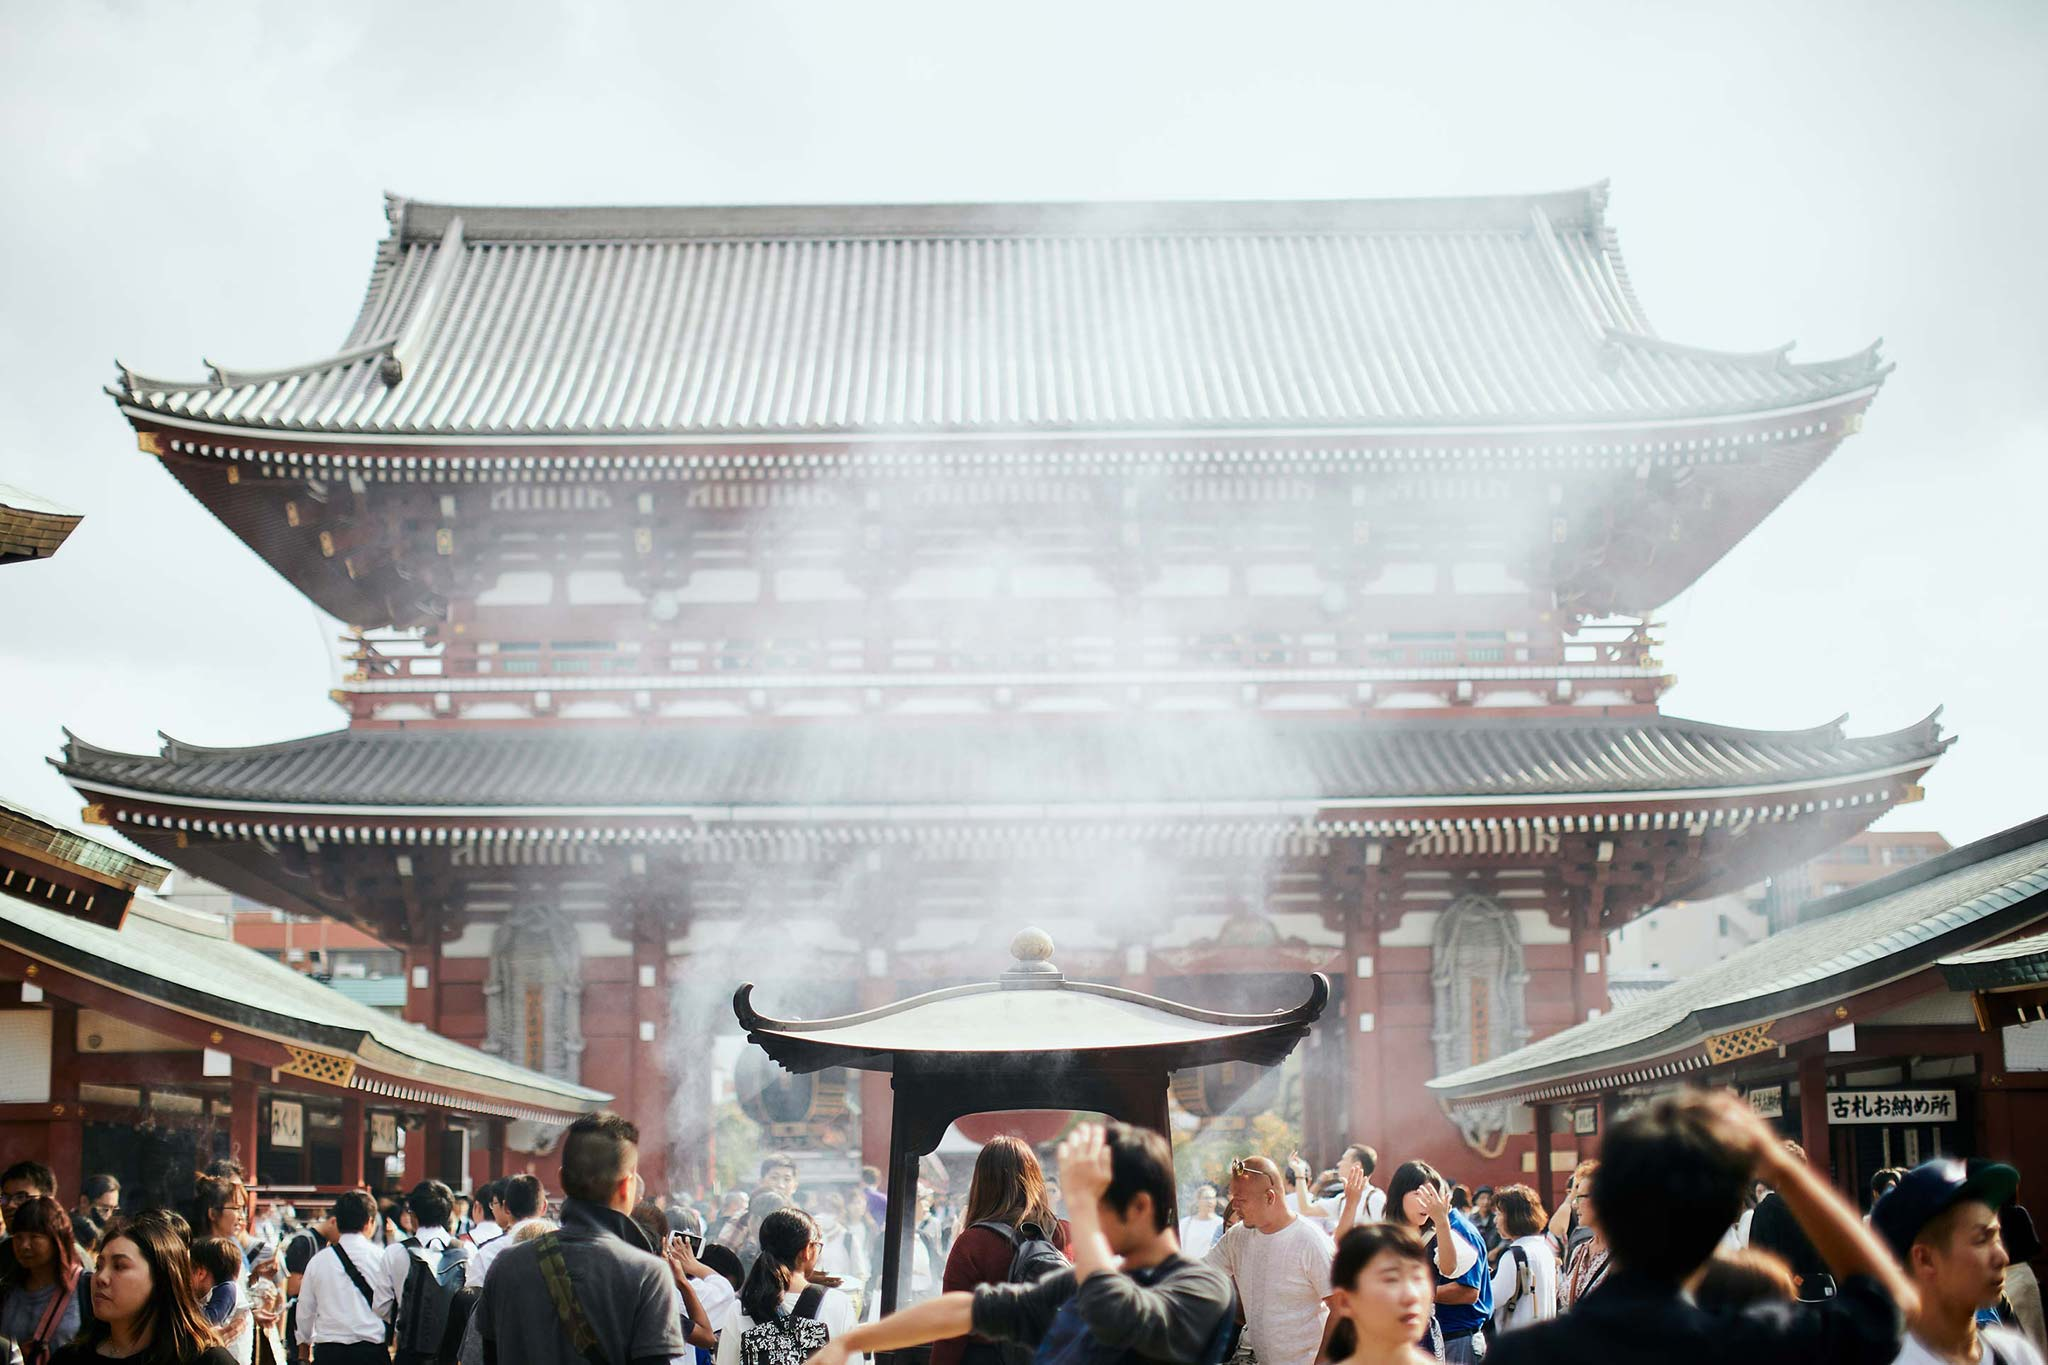 tokyo asakusa shrine traditional wedding smoke from temple and tourists